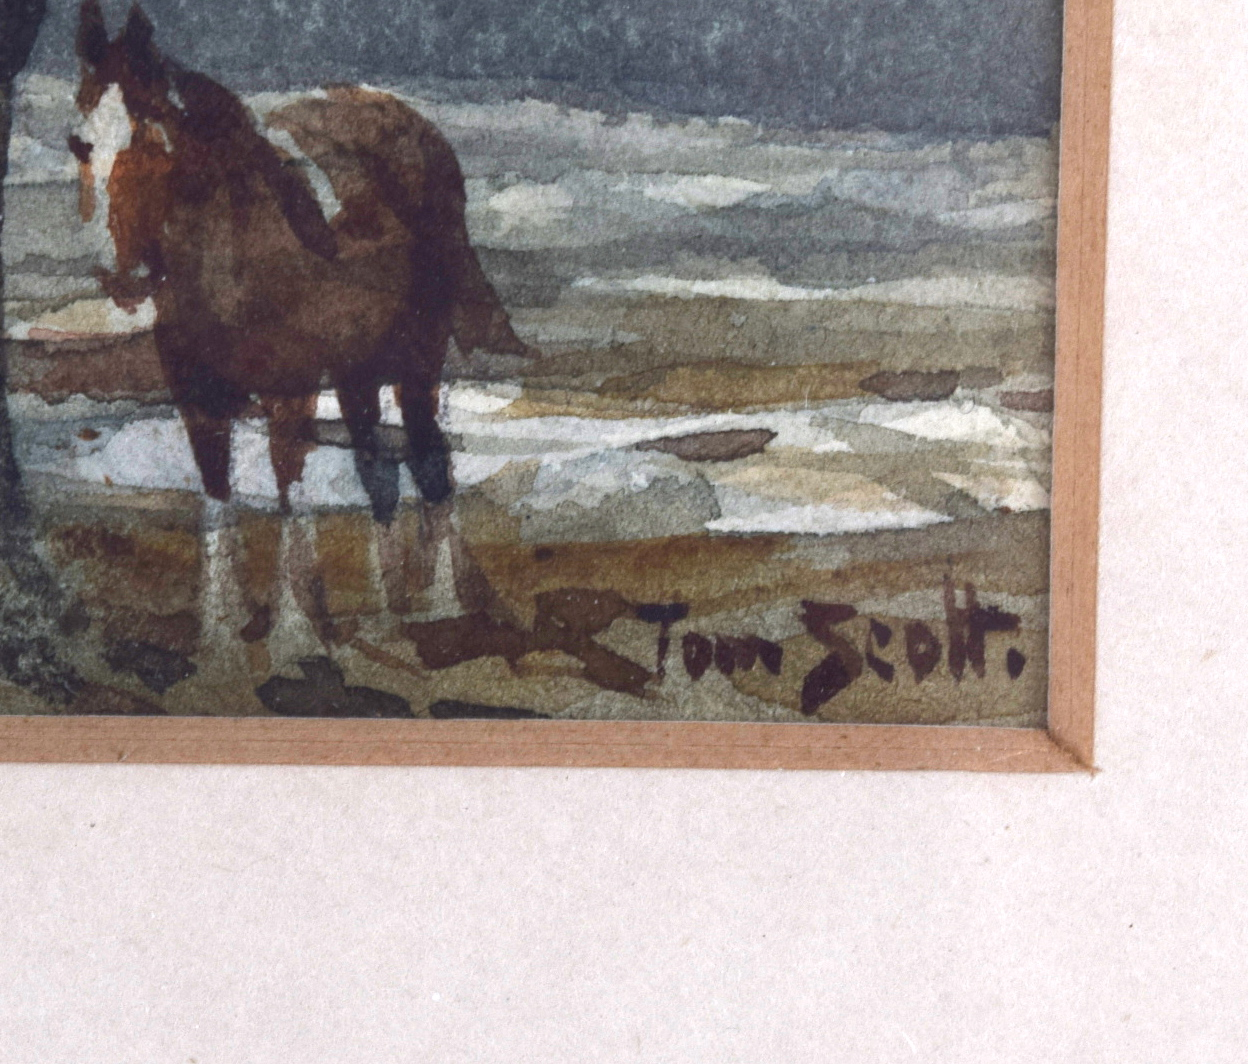 Lot 2488 - TOM SCOTT (1854-1927) FRAMED WATERCOLOUR, signed, a horse beside a tree in a landscape, label with